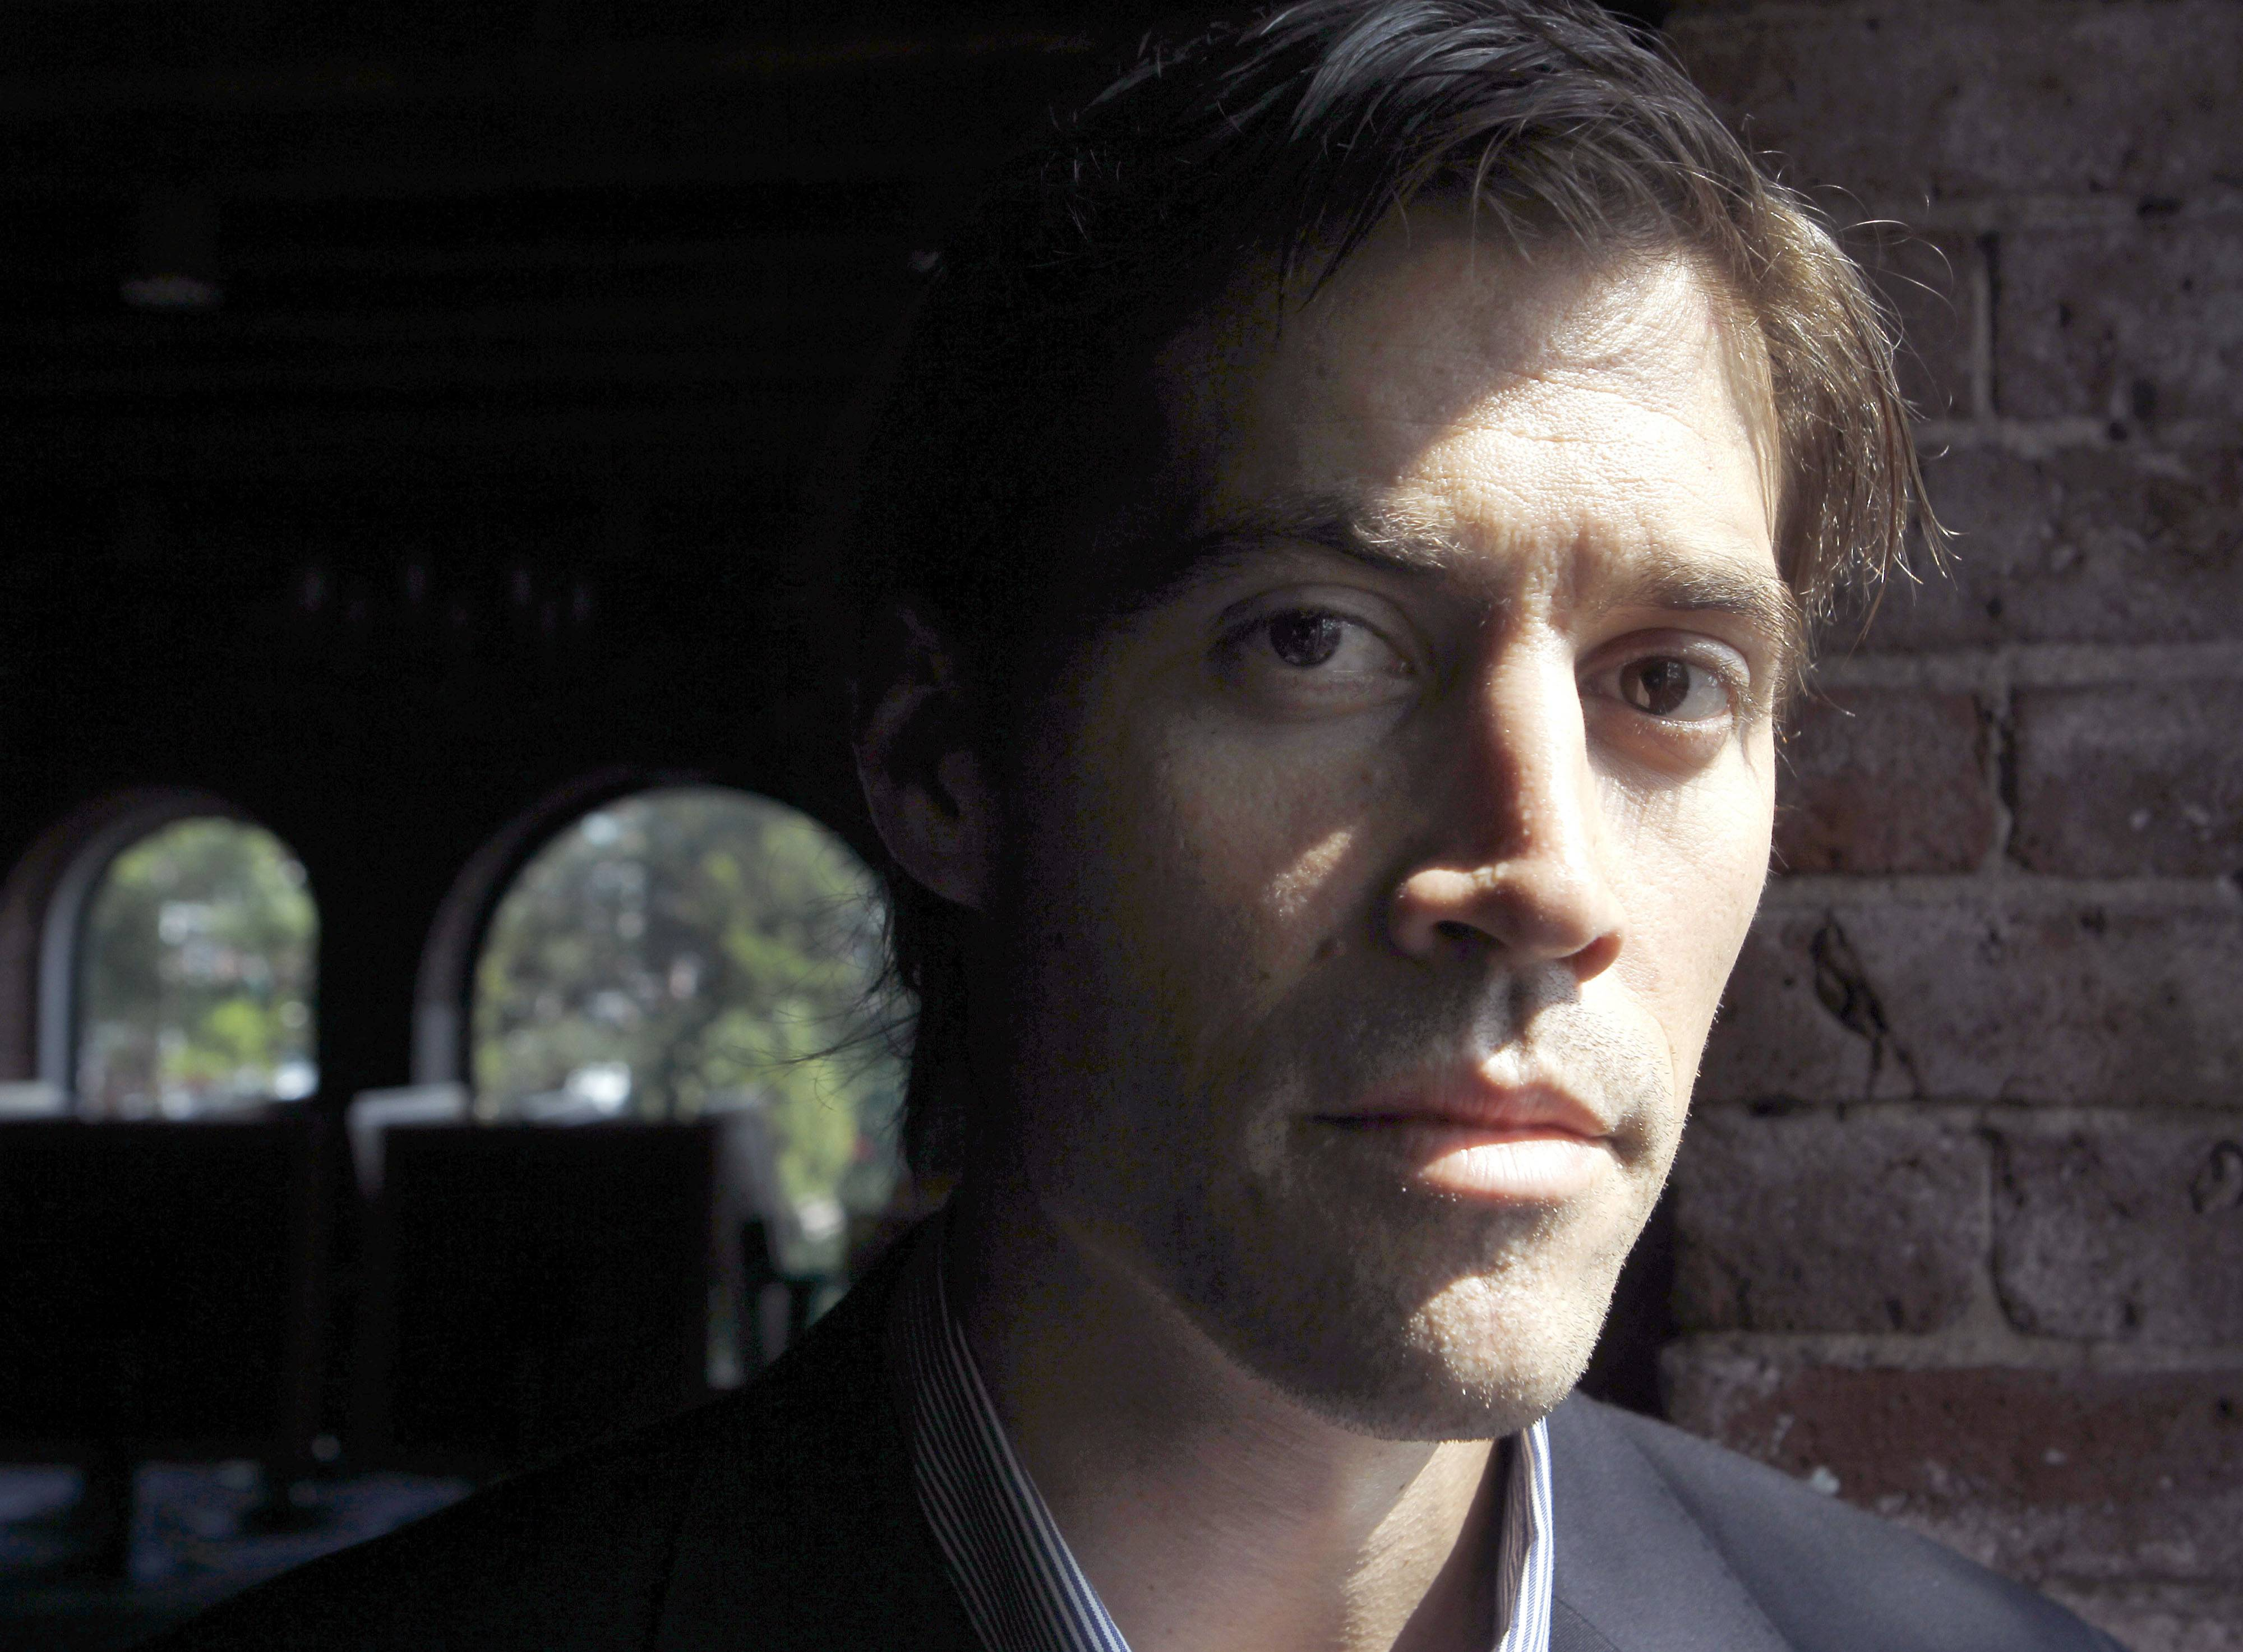 Just under half of the 70 journalists killed in Syria since the conflict began in 2011 have been freelancers. James Foley, who was beheaded by Islamic militants in a grisly video released last week, was one of them.